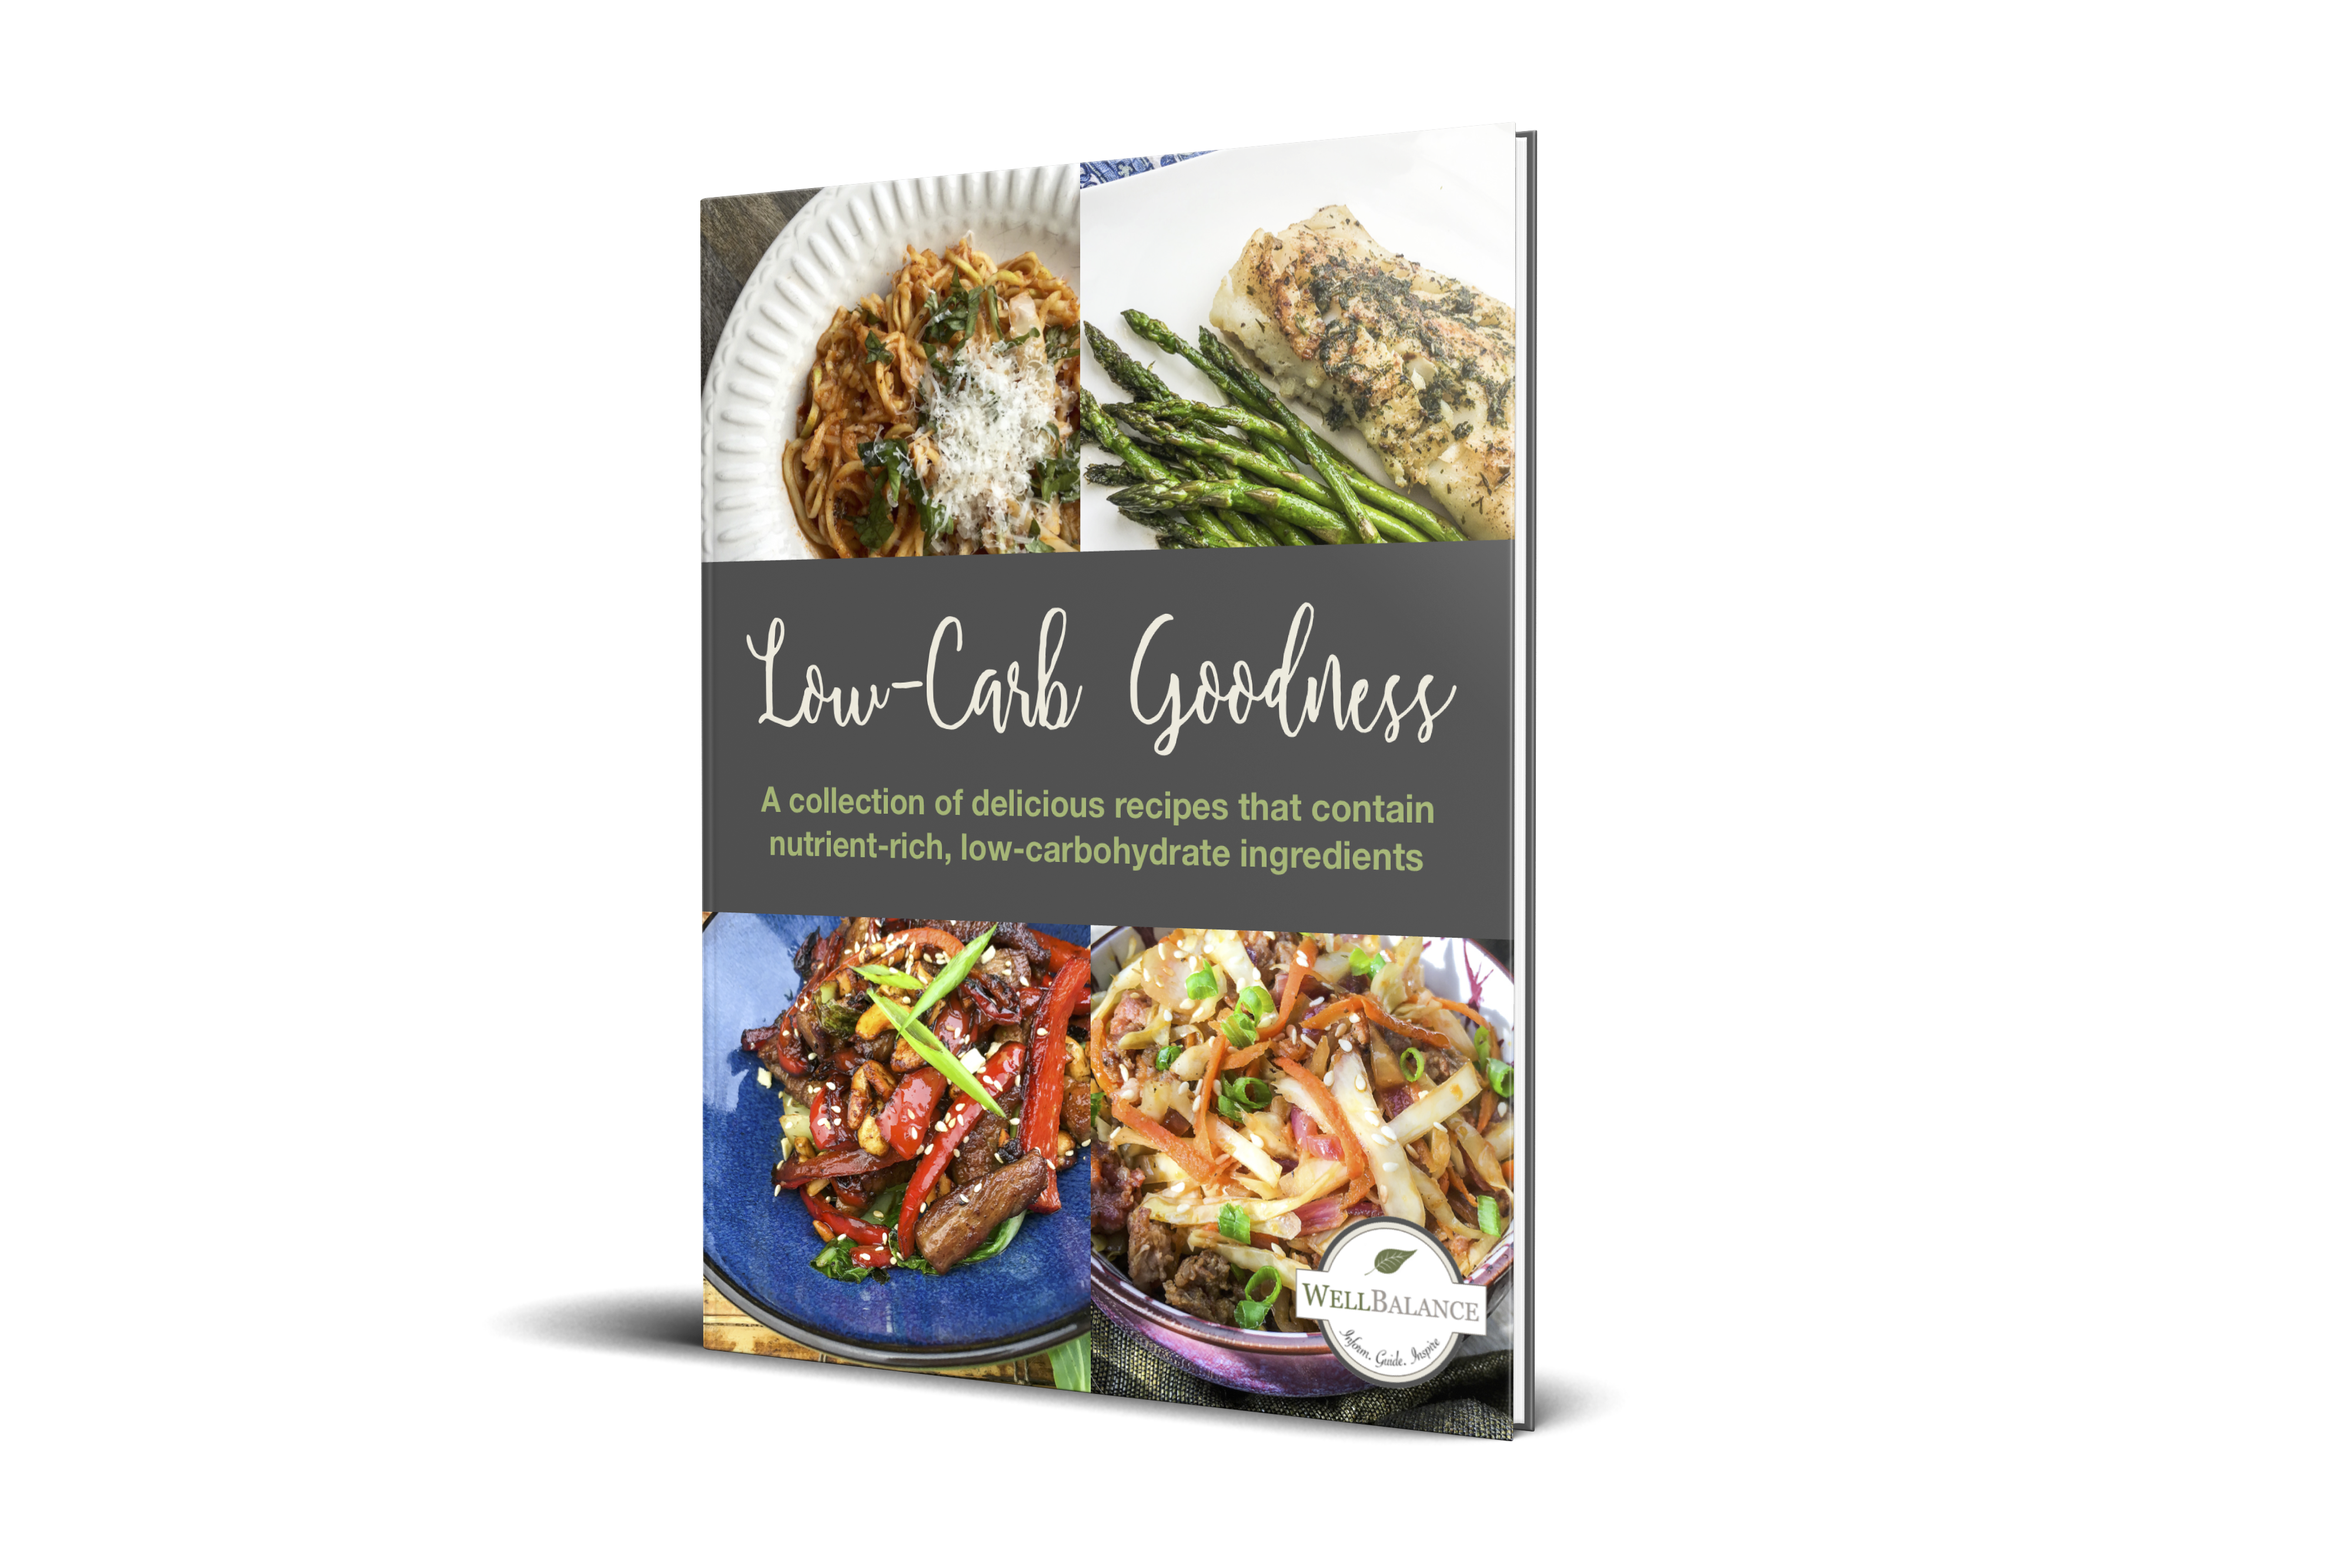 Low-Carb Goodness Recipe Collection: delicious recipes that contain nutrient-rich, low-carbohydrate ingredients